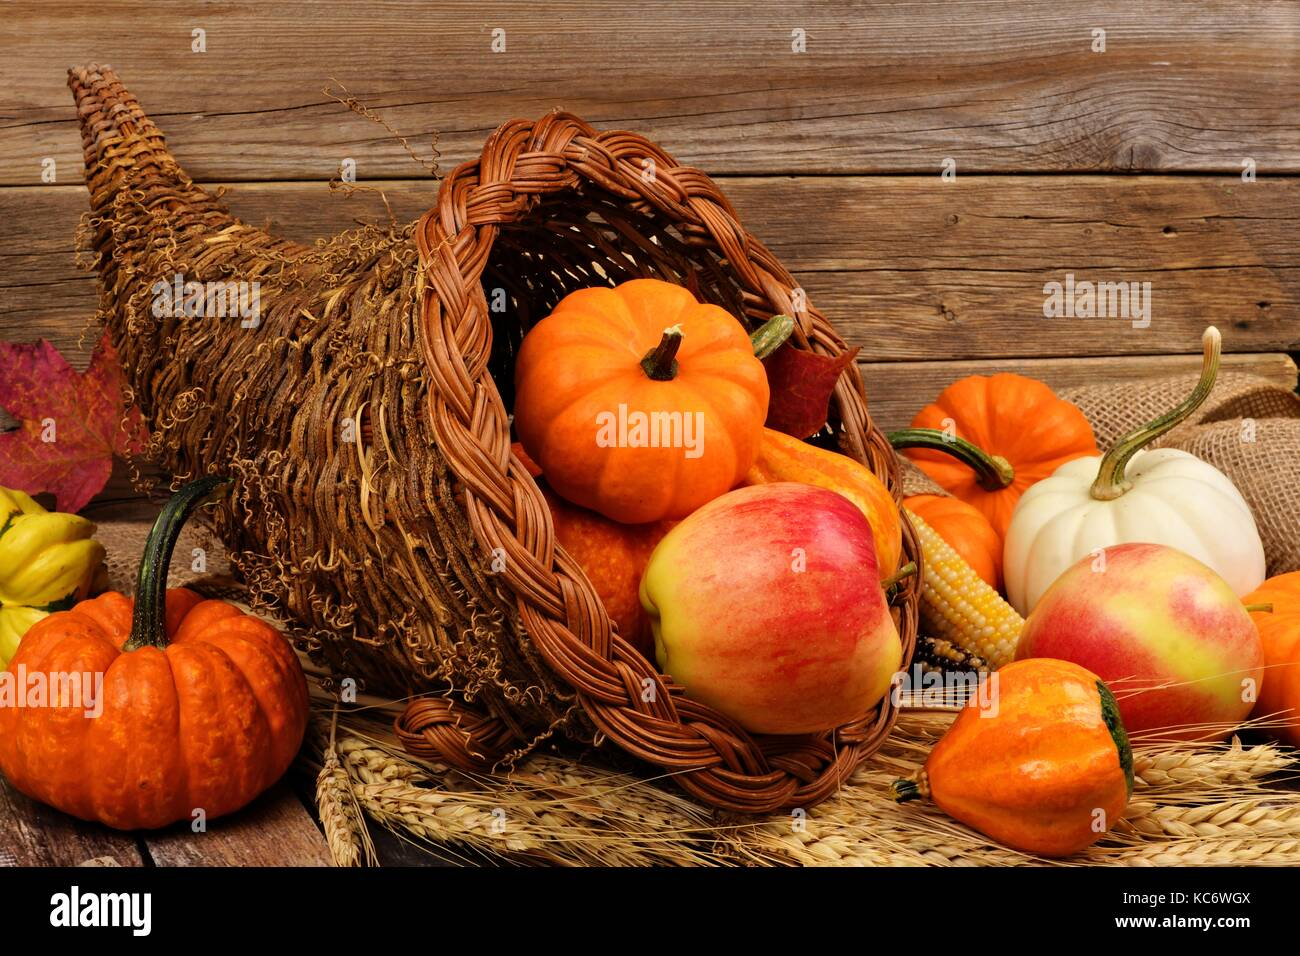 Thanksgiving cornucopia filled with pumpkins and fruit against a rustic wooden background - Stock Image